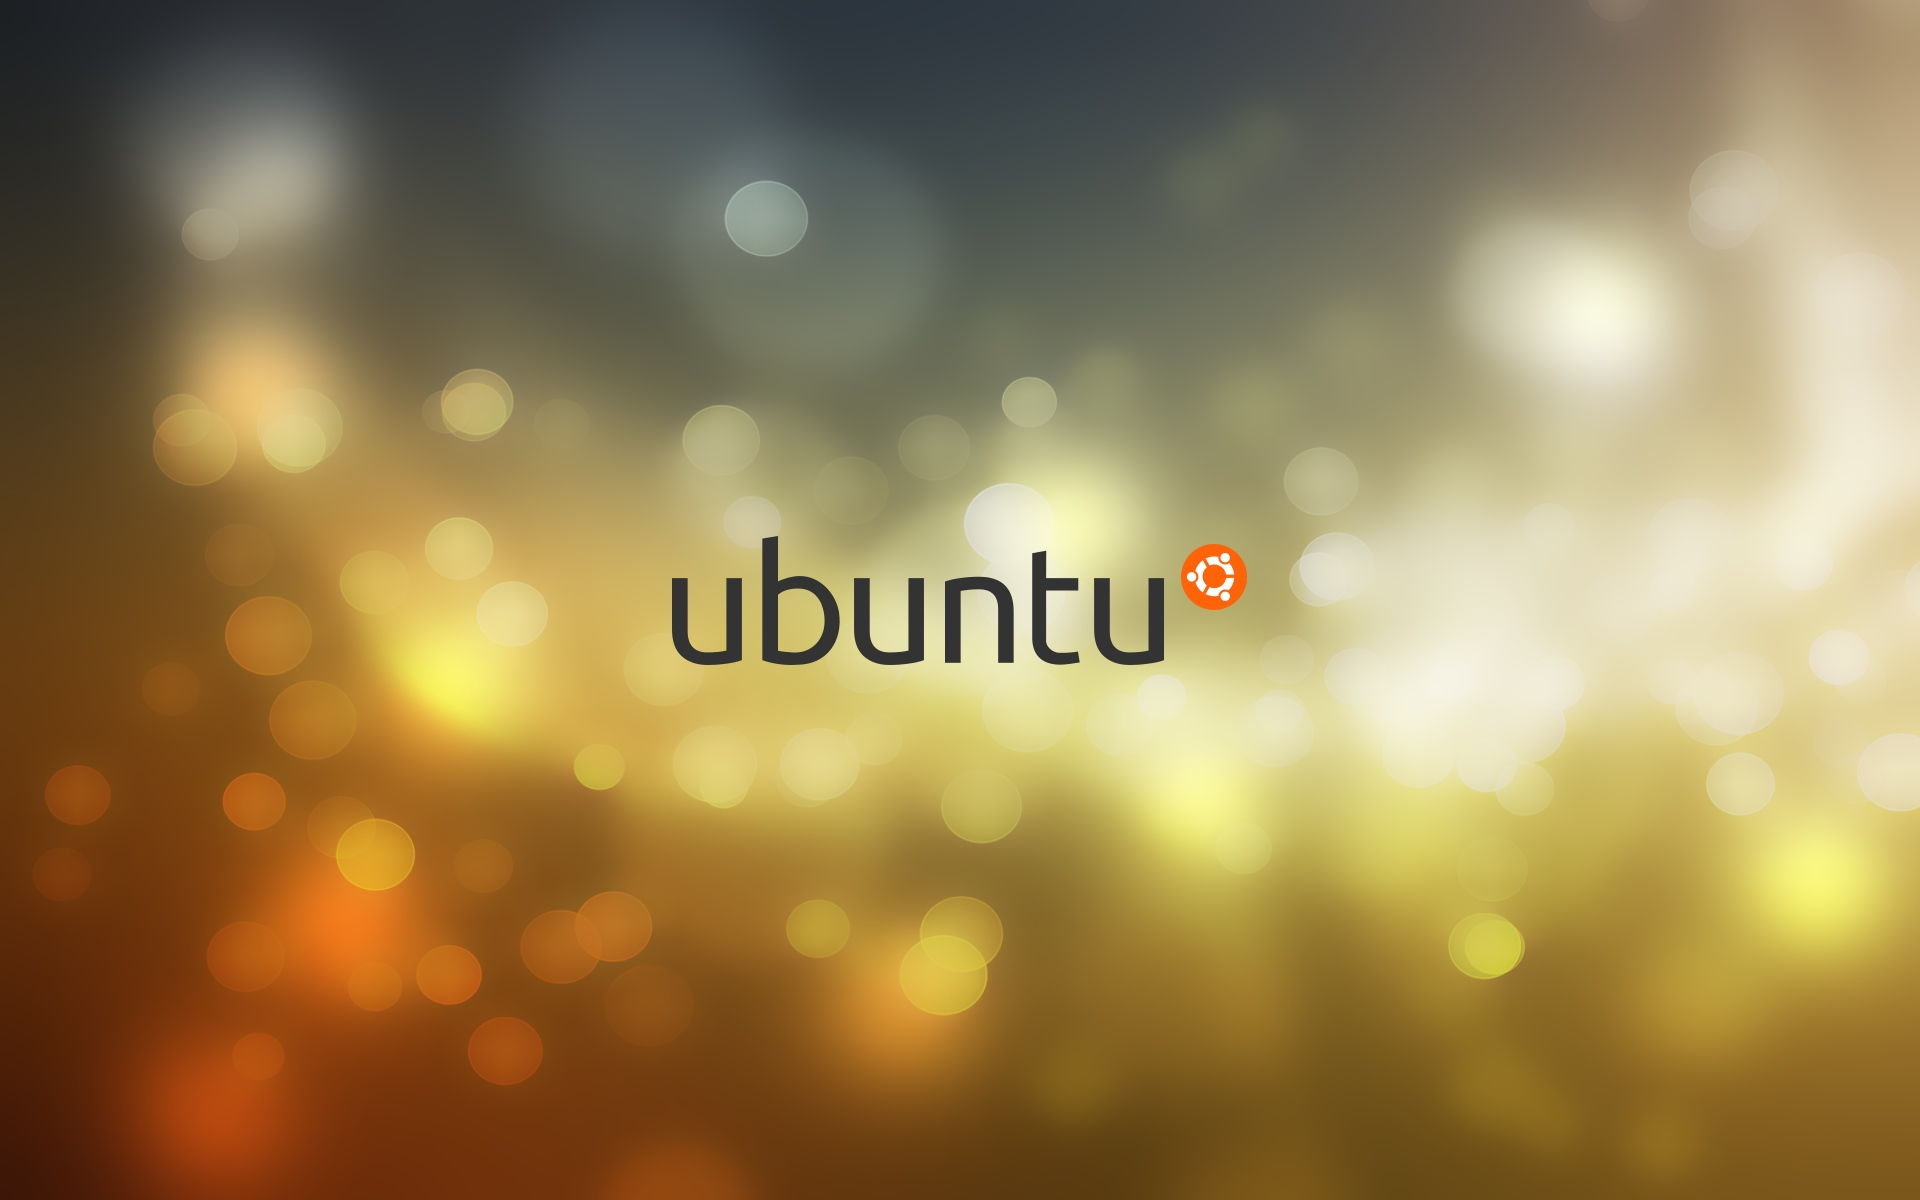 46 Ubuntu Wallpapers For Desktop and Laptops 1920x1200